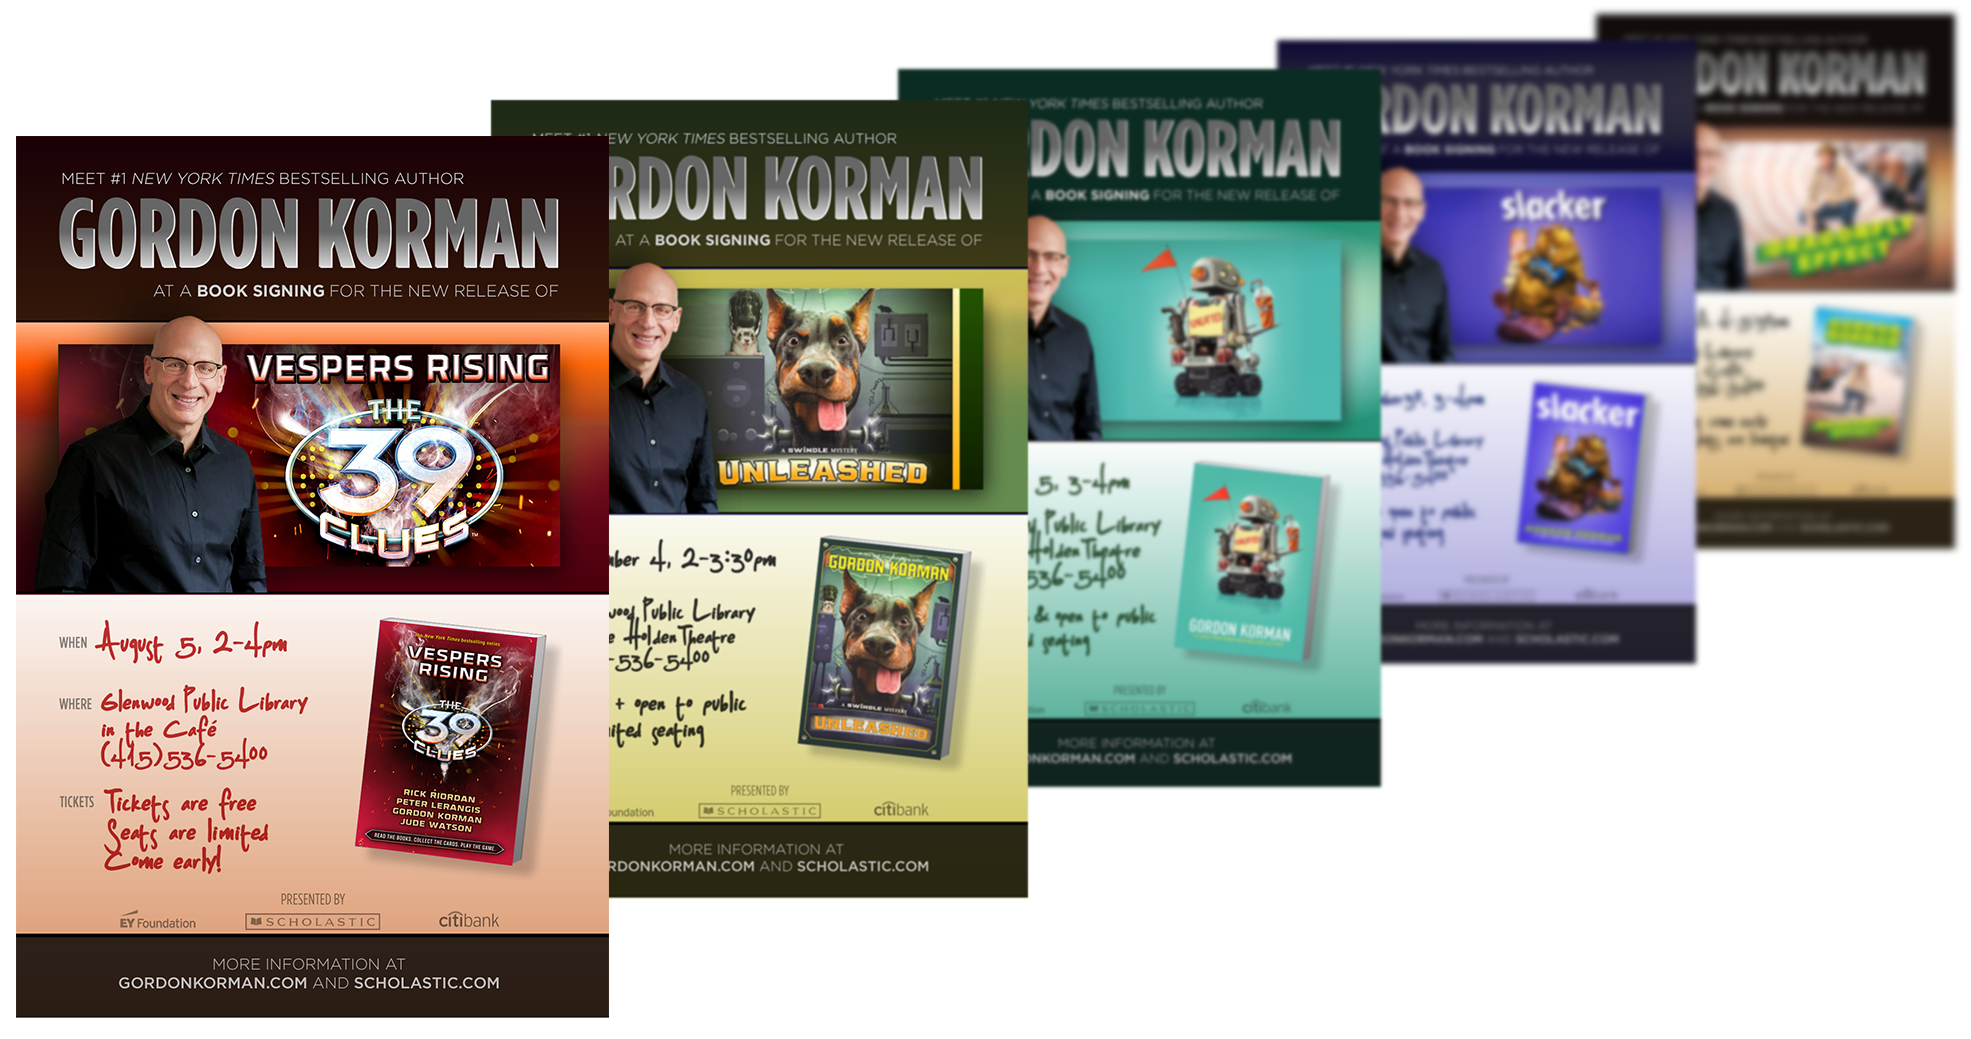 BOOK TOUR - 5 Posters - 1546.png